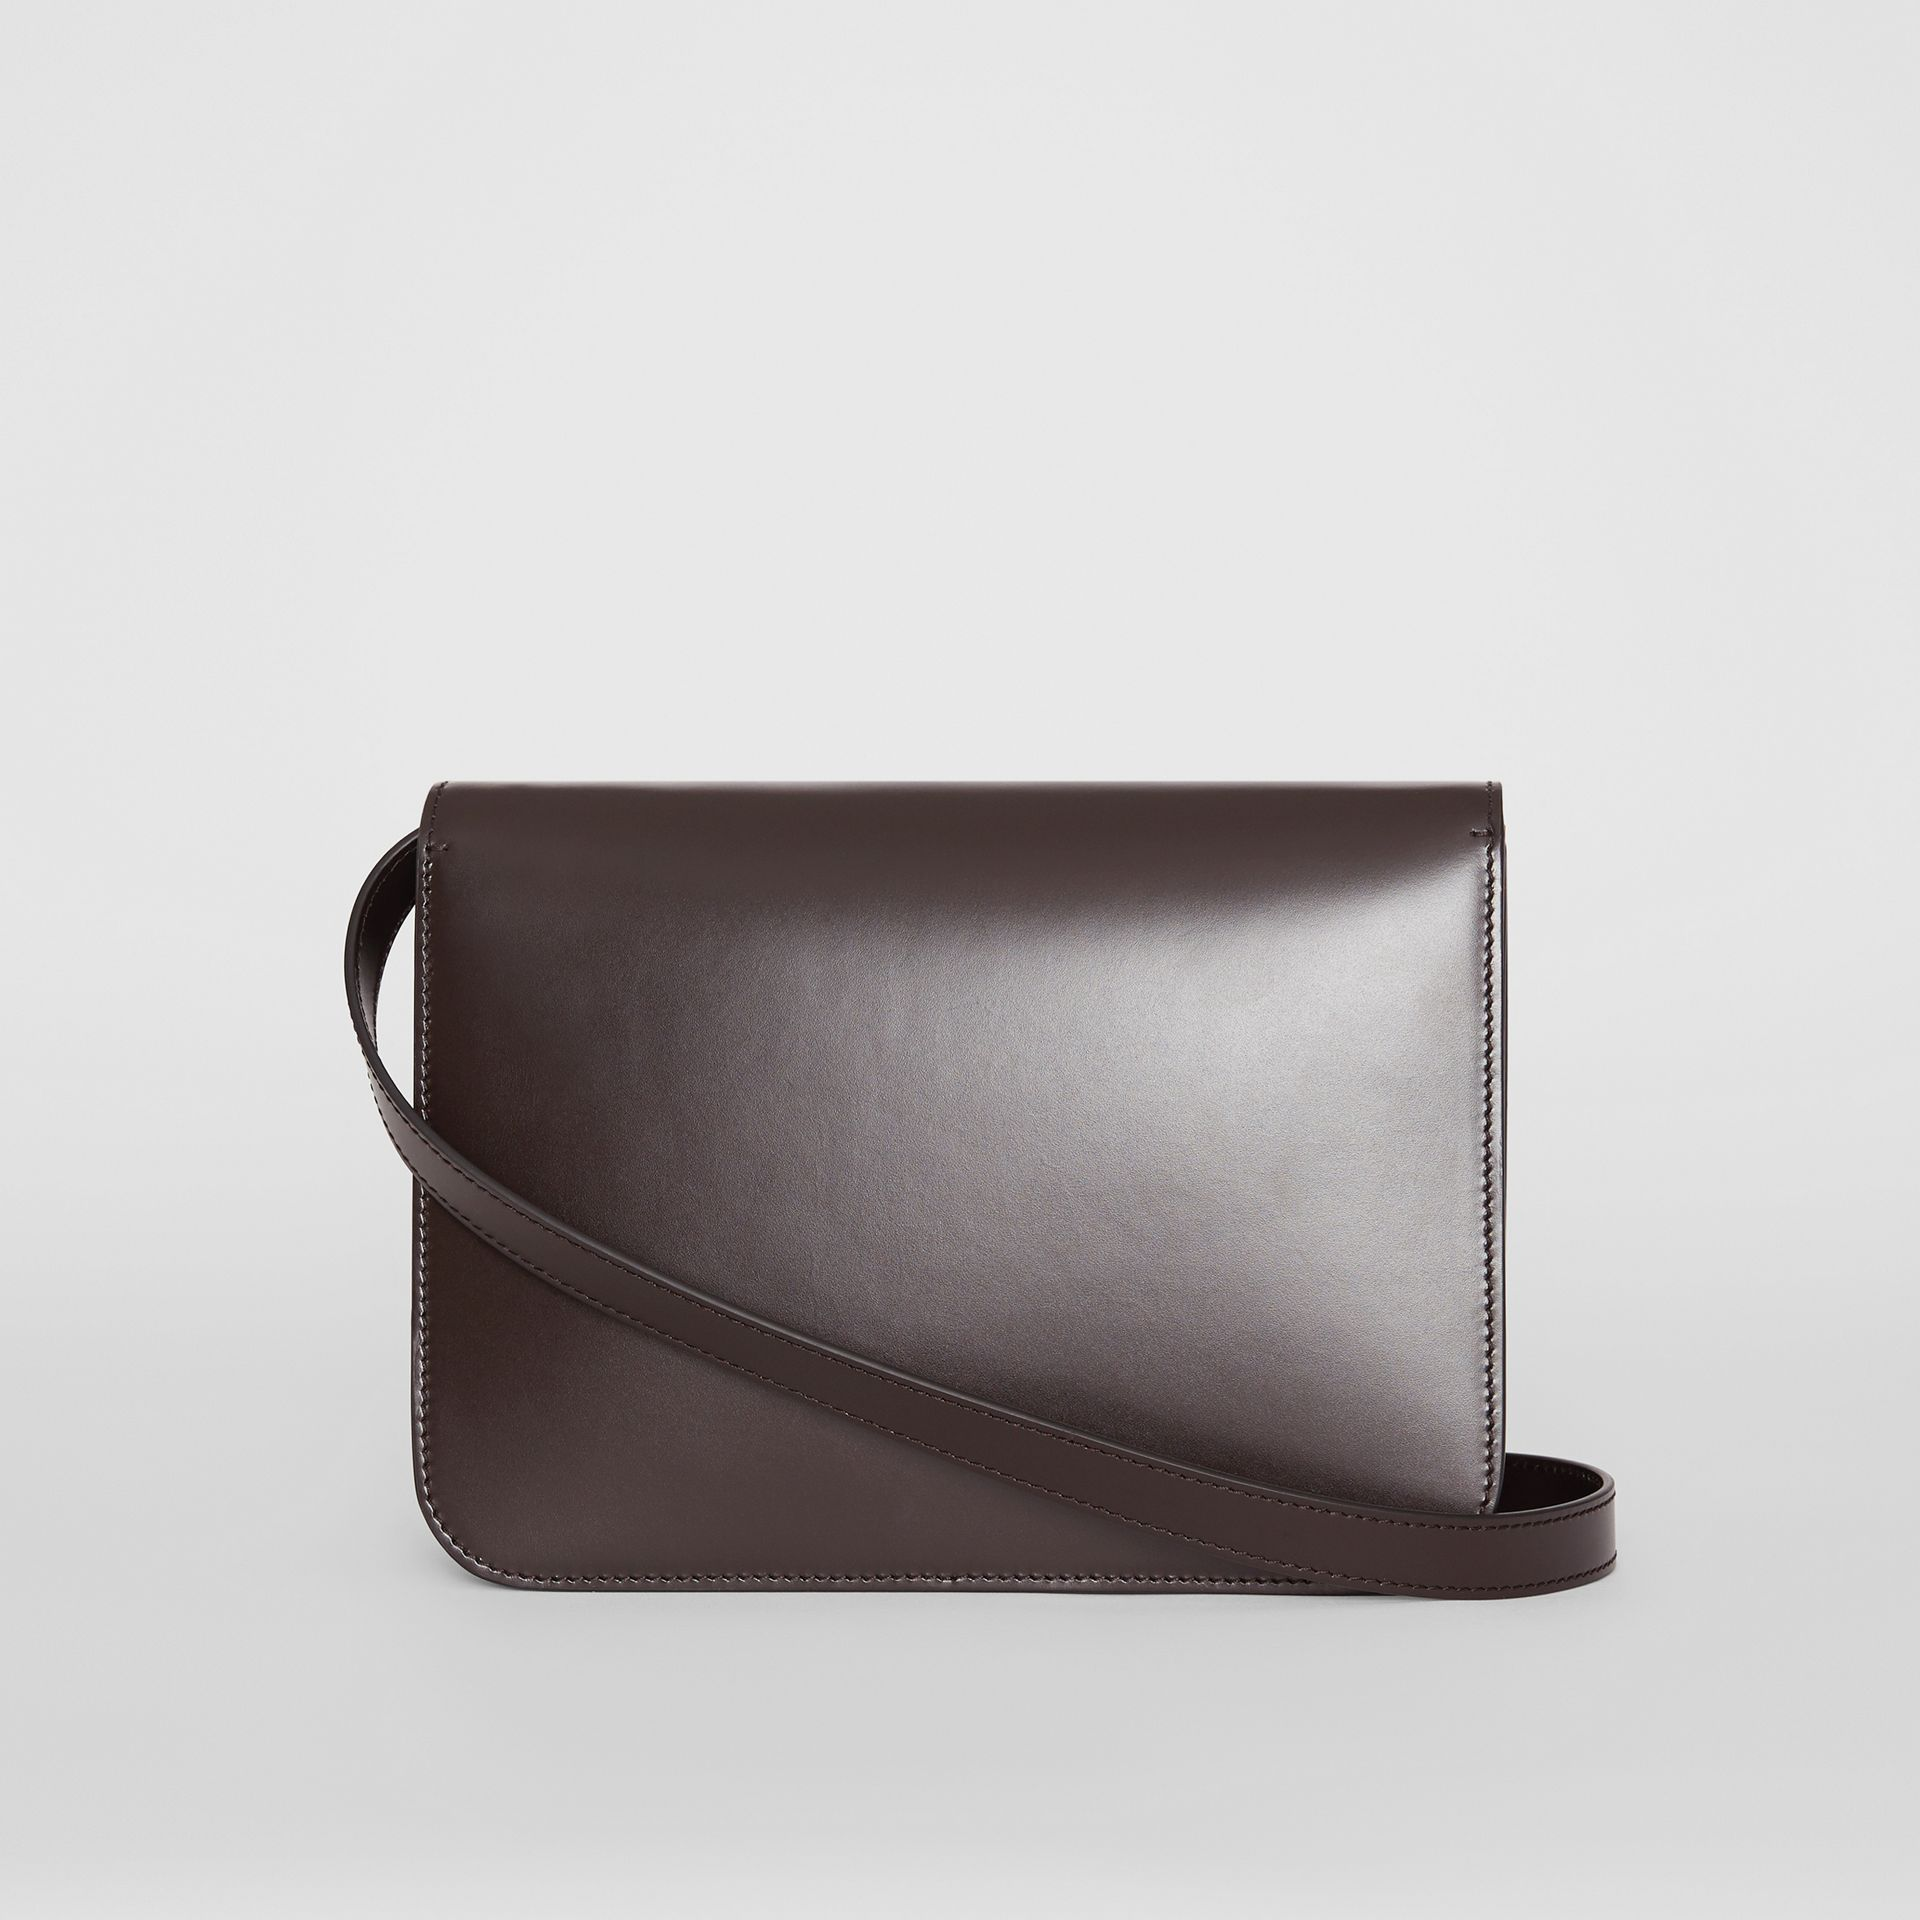 Medium Leather TB Bag in Coffee - Women | Burberry Singapore - gallery image 7